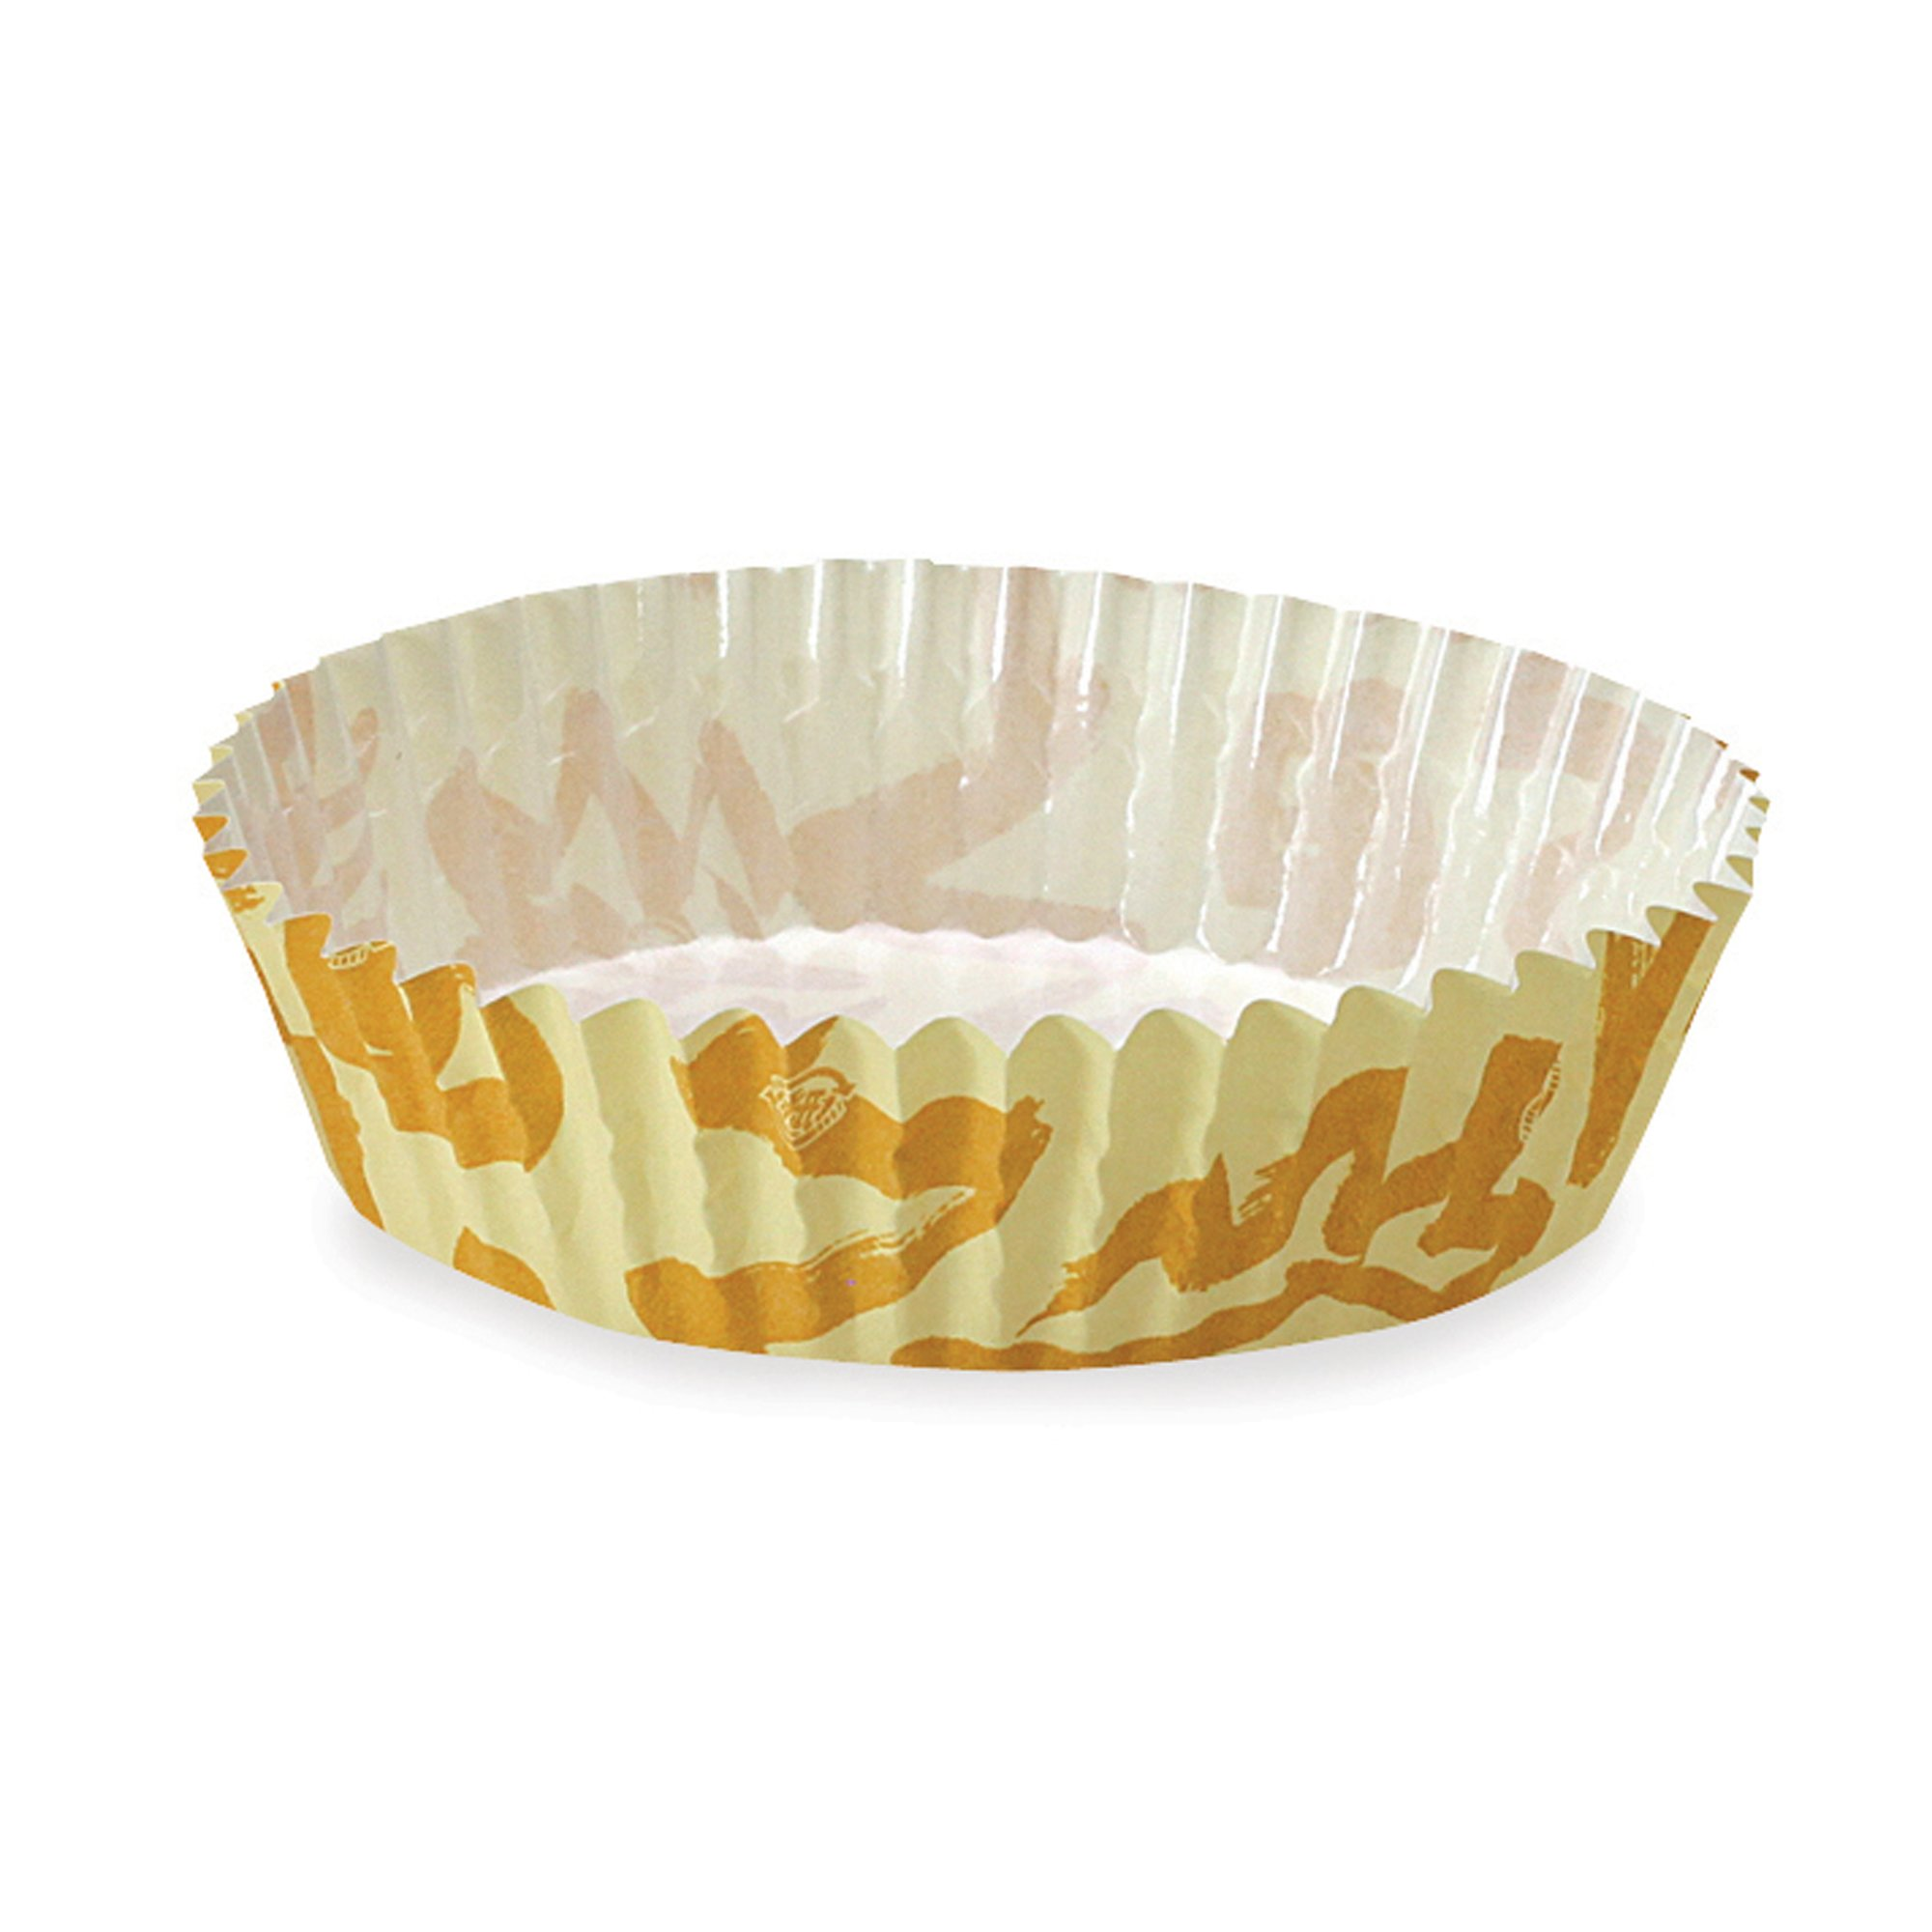 Welcome Home Brands Ruffled Baking Cups, Sunshine, 3.9''d x 1.2''h, Case/4500